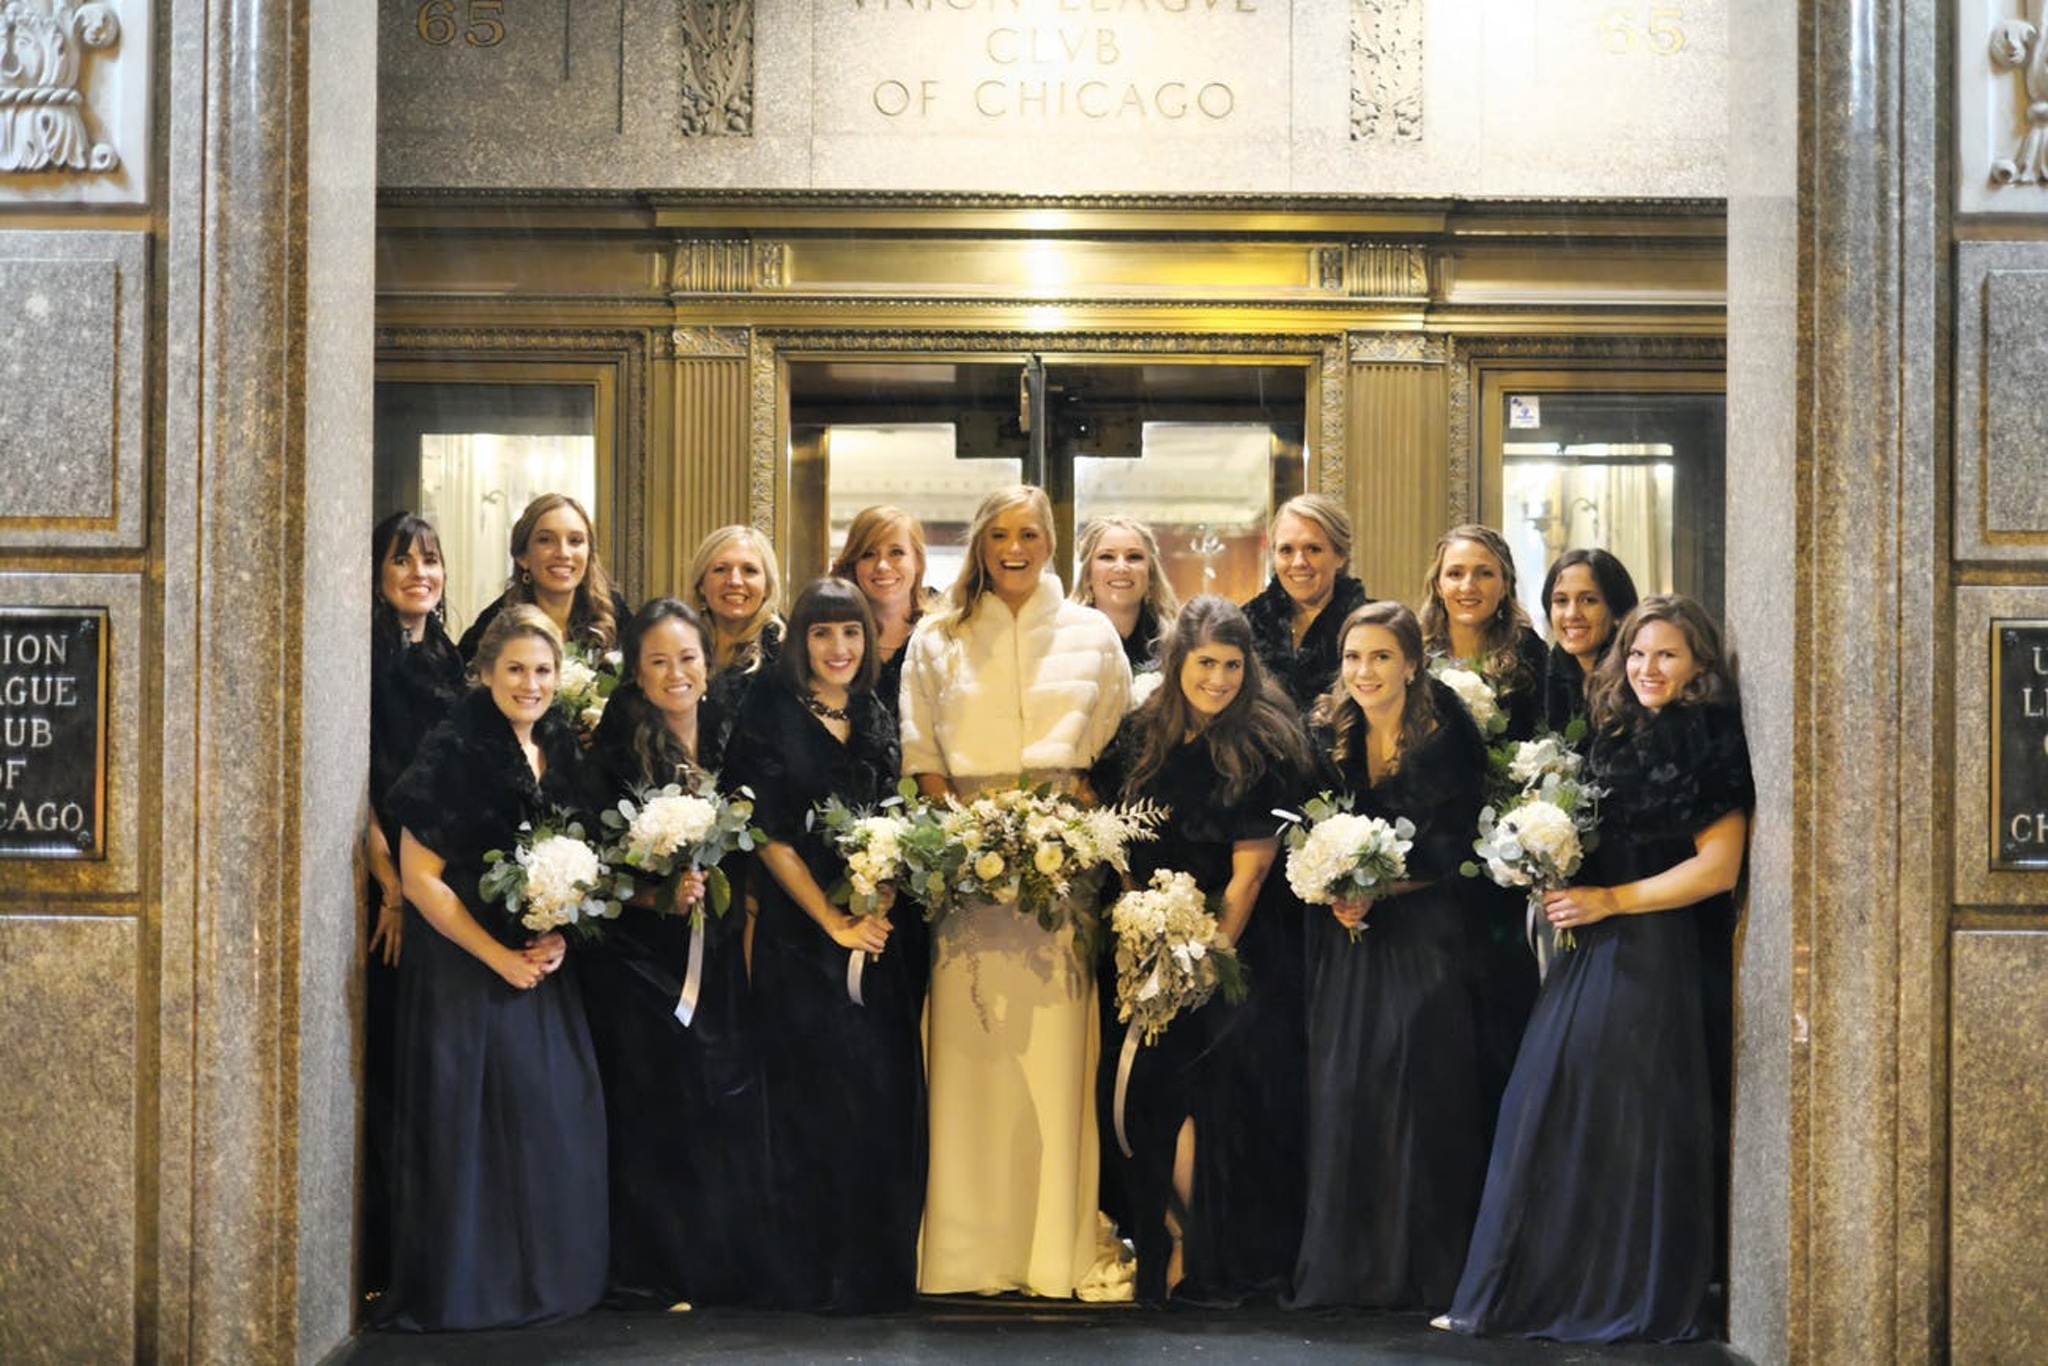 bridal party and bride outside in chicago during the winter for wedding portraits